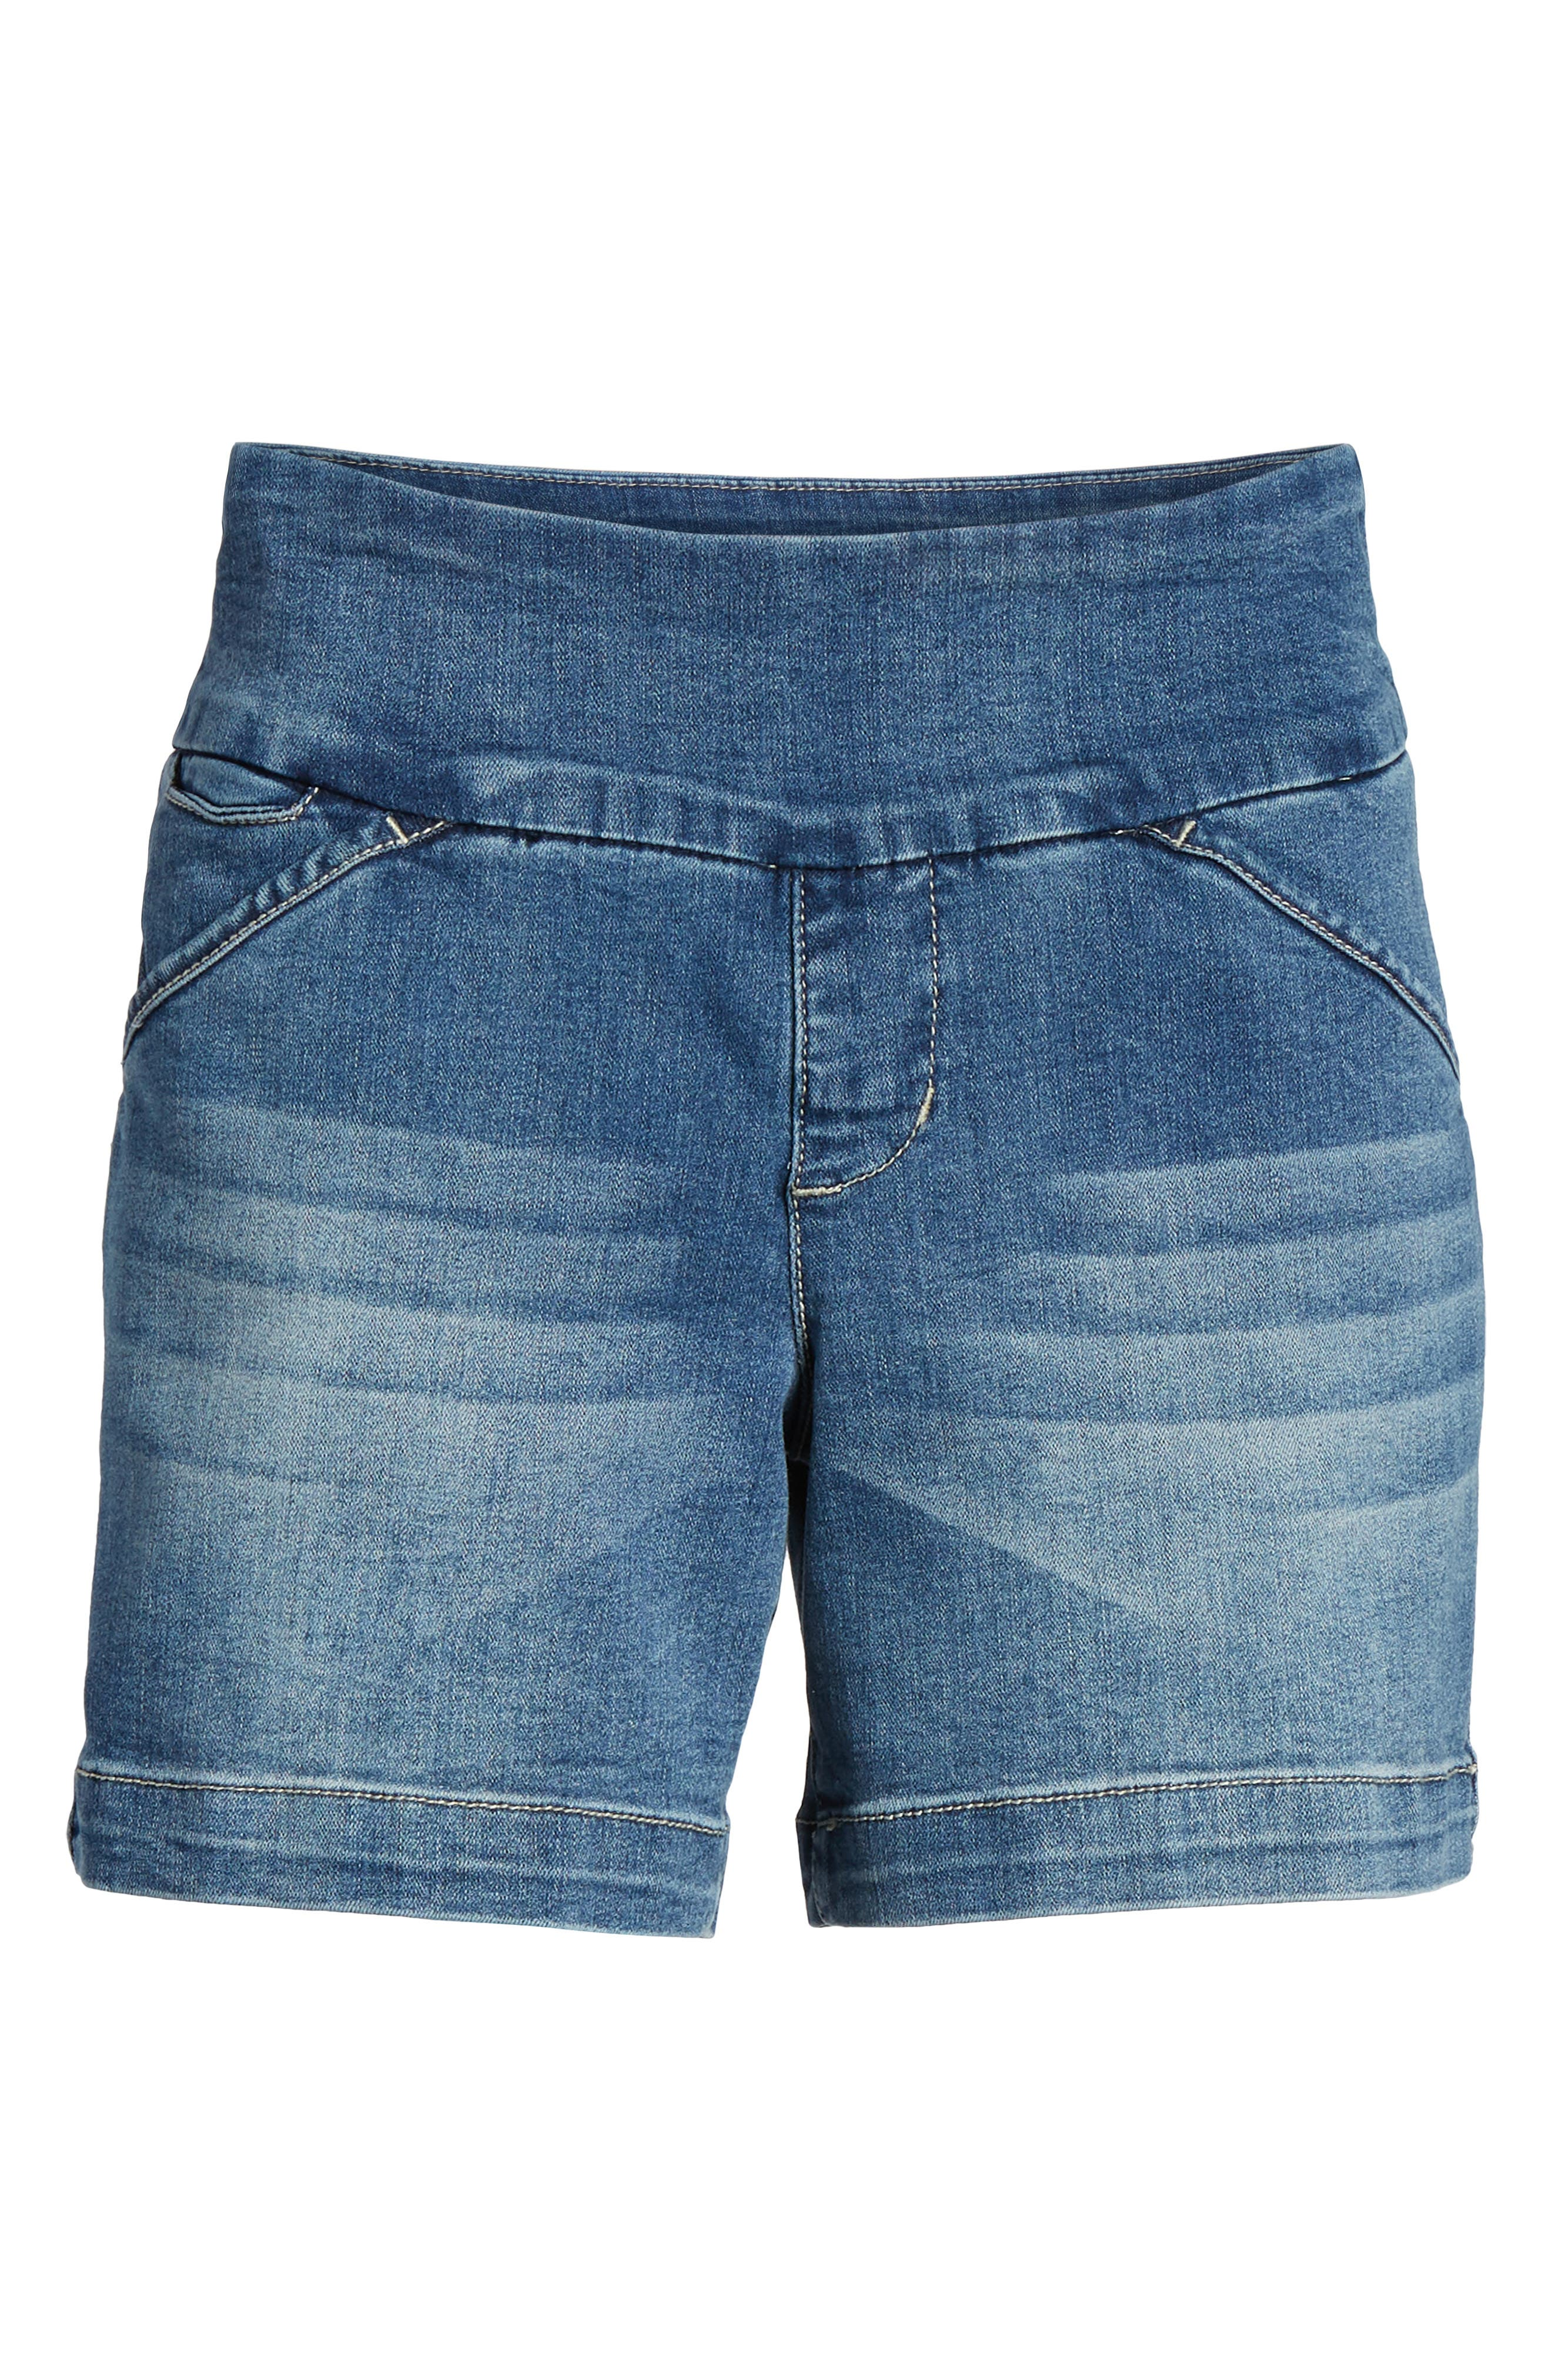 Ainsley 5 Denim Shorts,                             Alternate thumbnail 7, color,                             Med Indigo